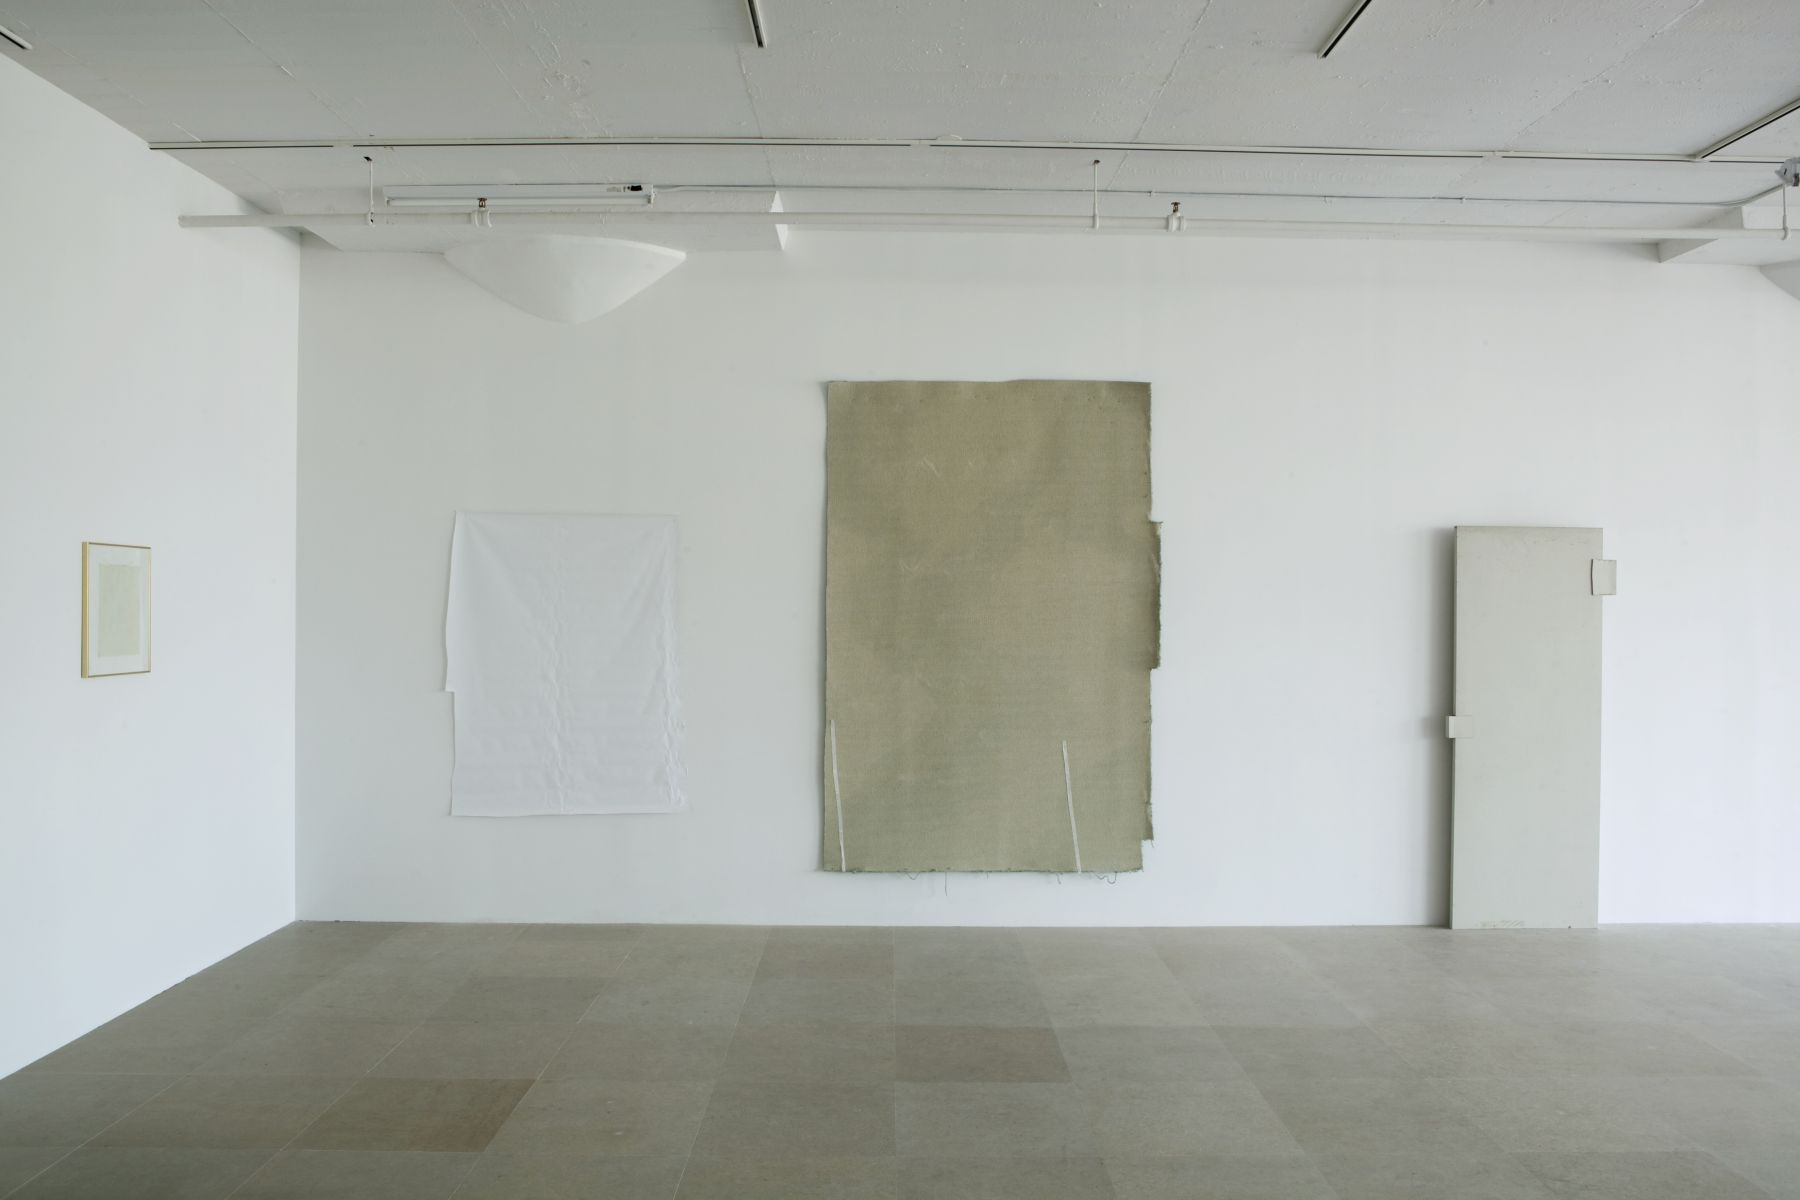 Gedi Sibony, From Center, and Skinny Legs Satisfying The Purposes Completely, Her Trumpeted Spoke Lastly, 2010, hollow-core door, paint, carpet, tape, vinyl, matted drawing reversed in frame, 120 x 120 x 288 inches overall footprint